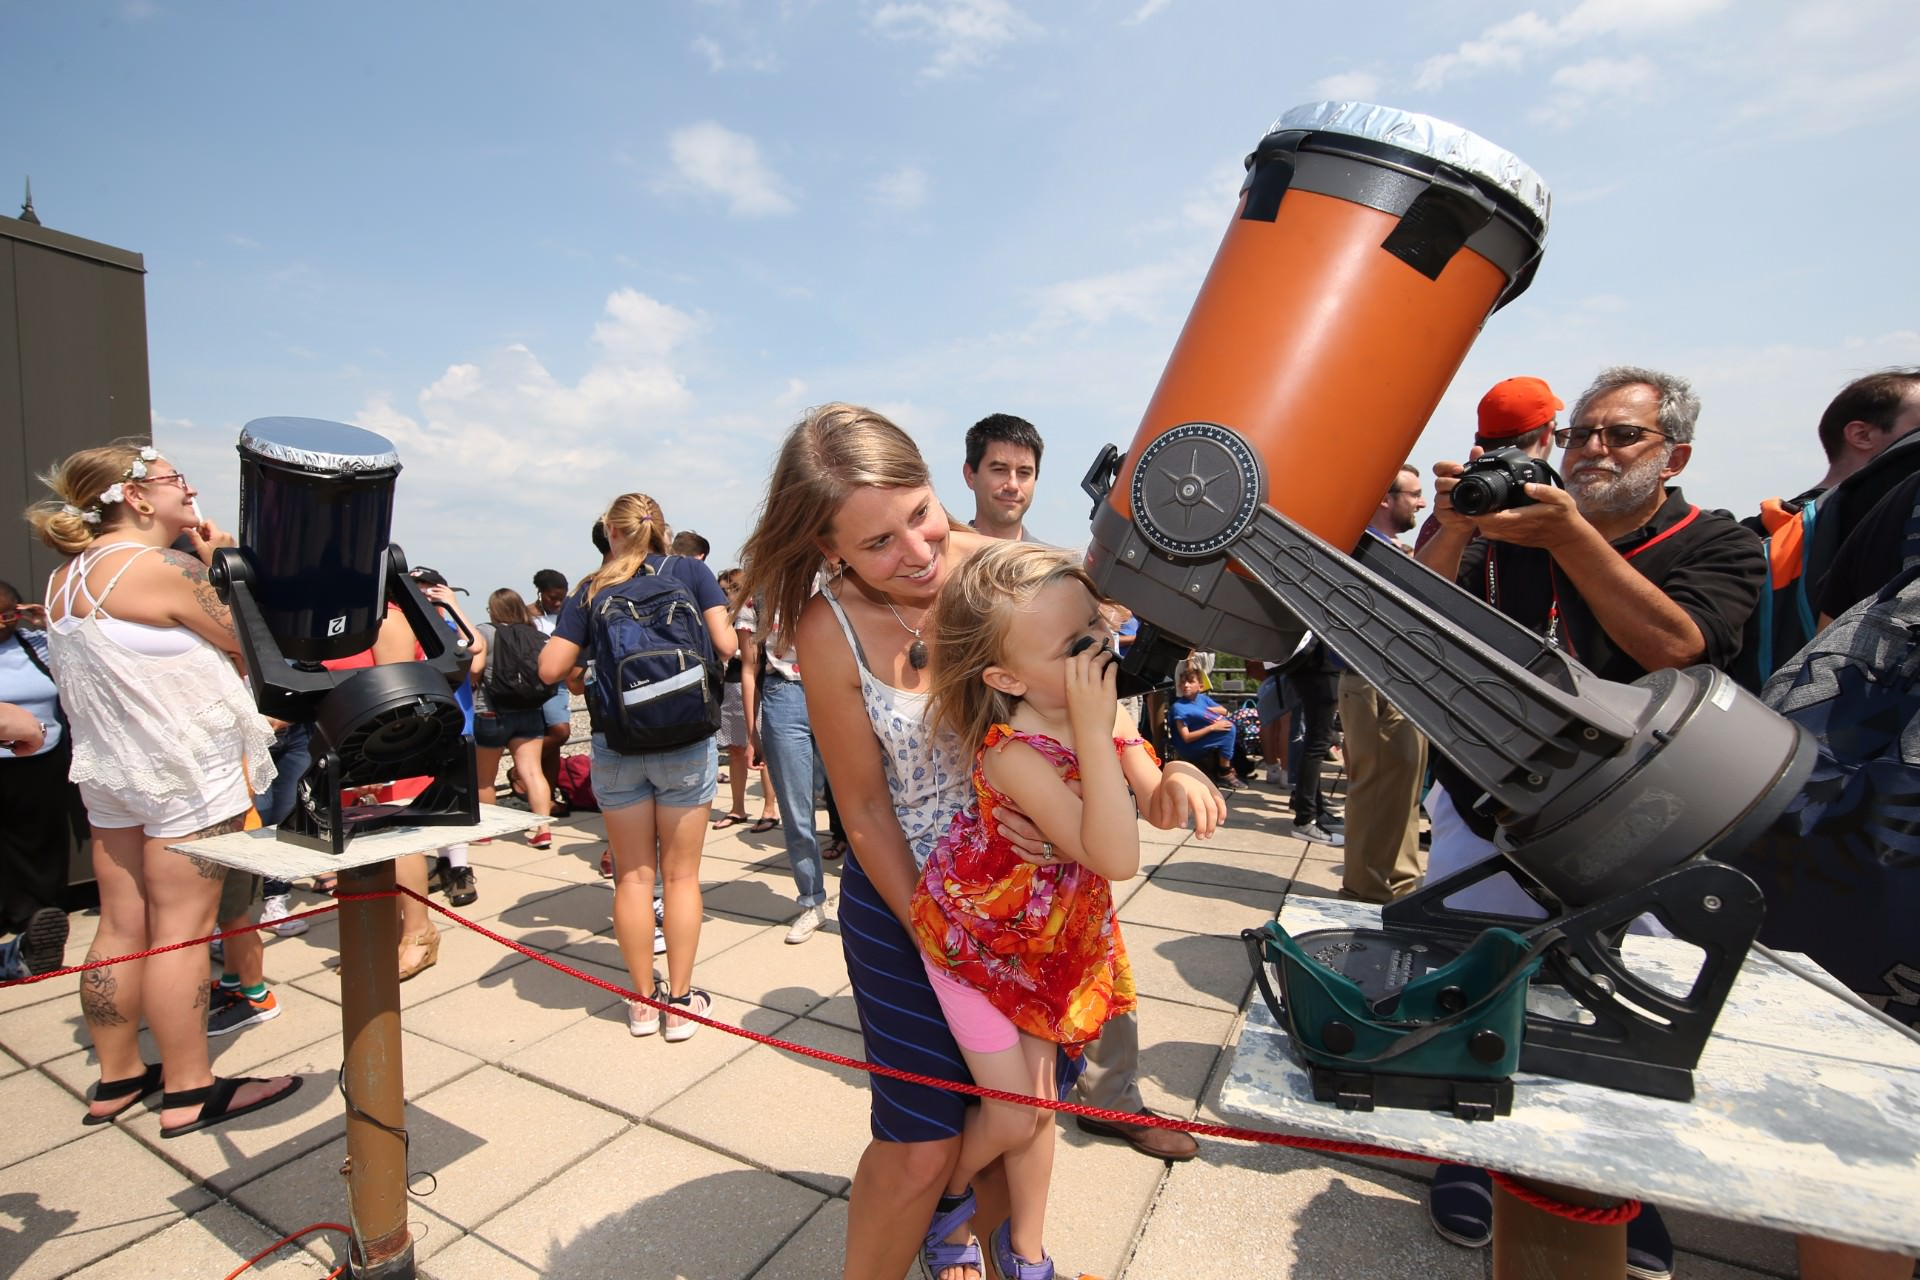 small child looking into telescope